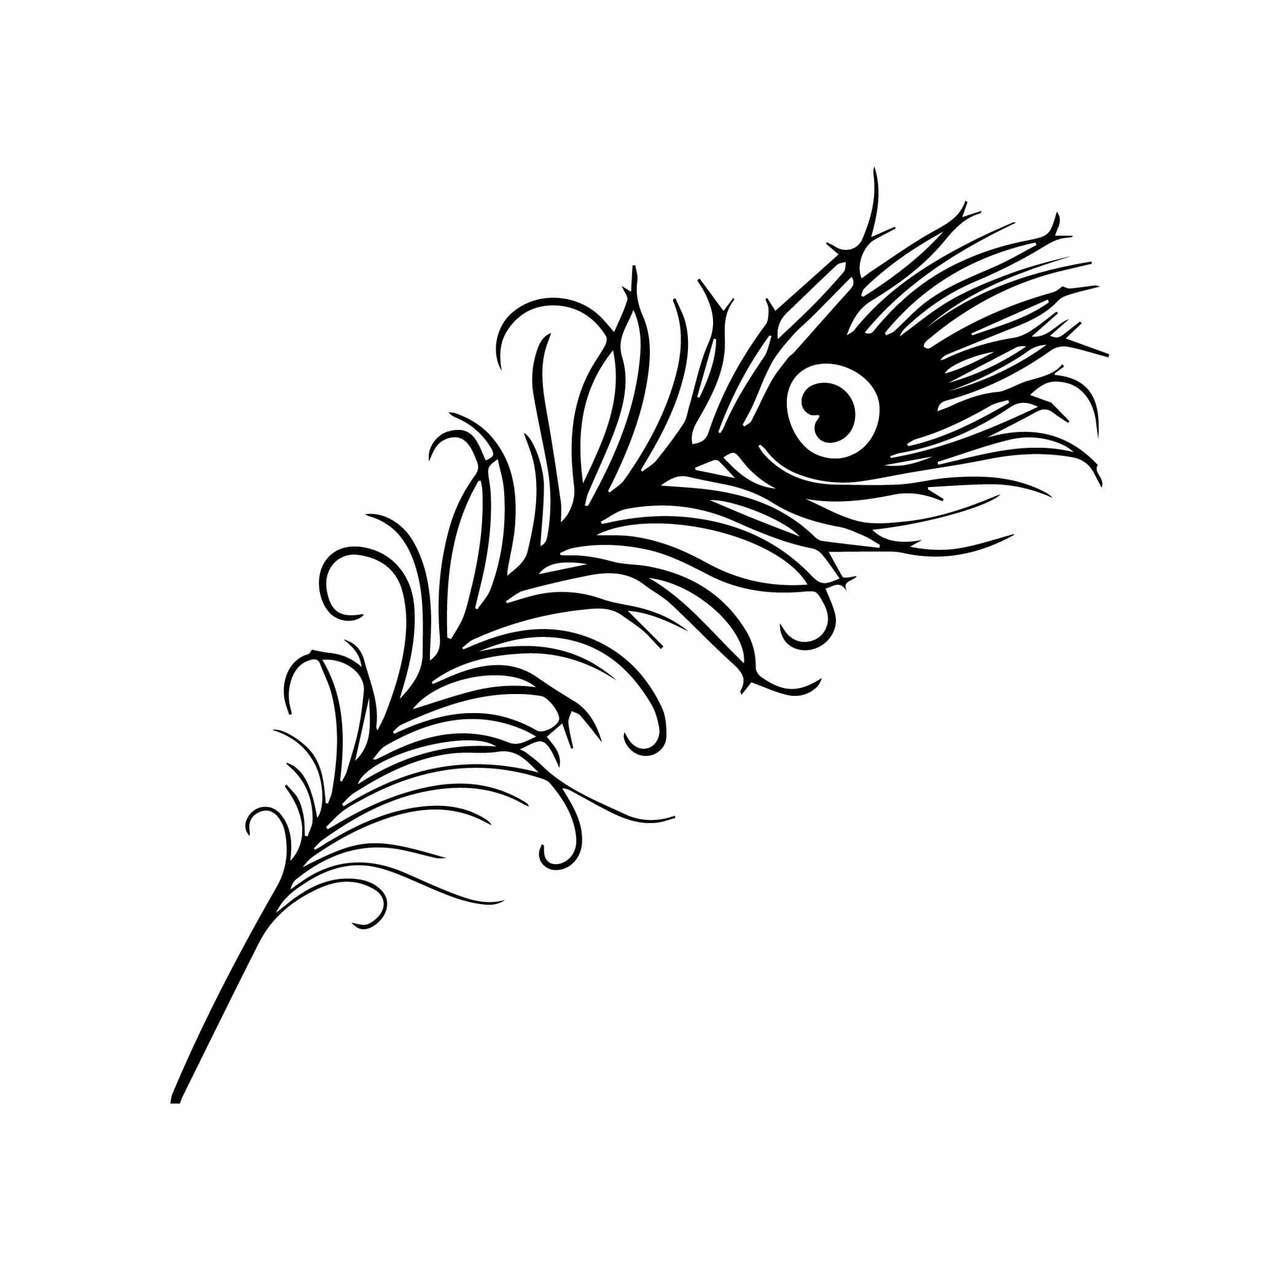 Peacock feather clipart file black and white library Free Peacock Feather SVG Cut File | Craftables black and white library